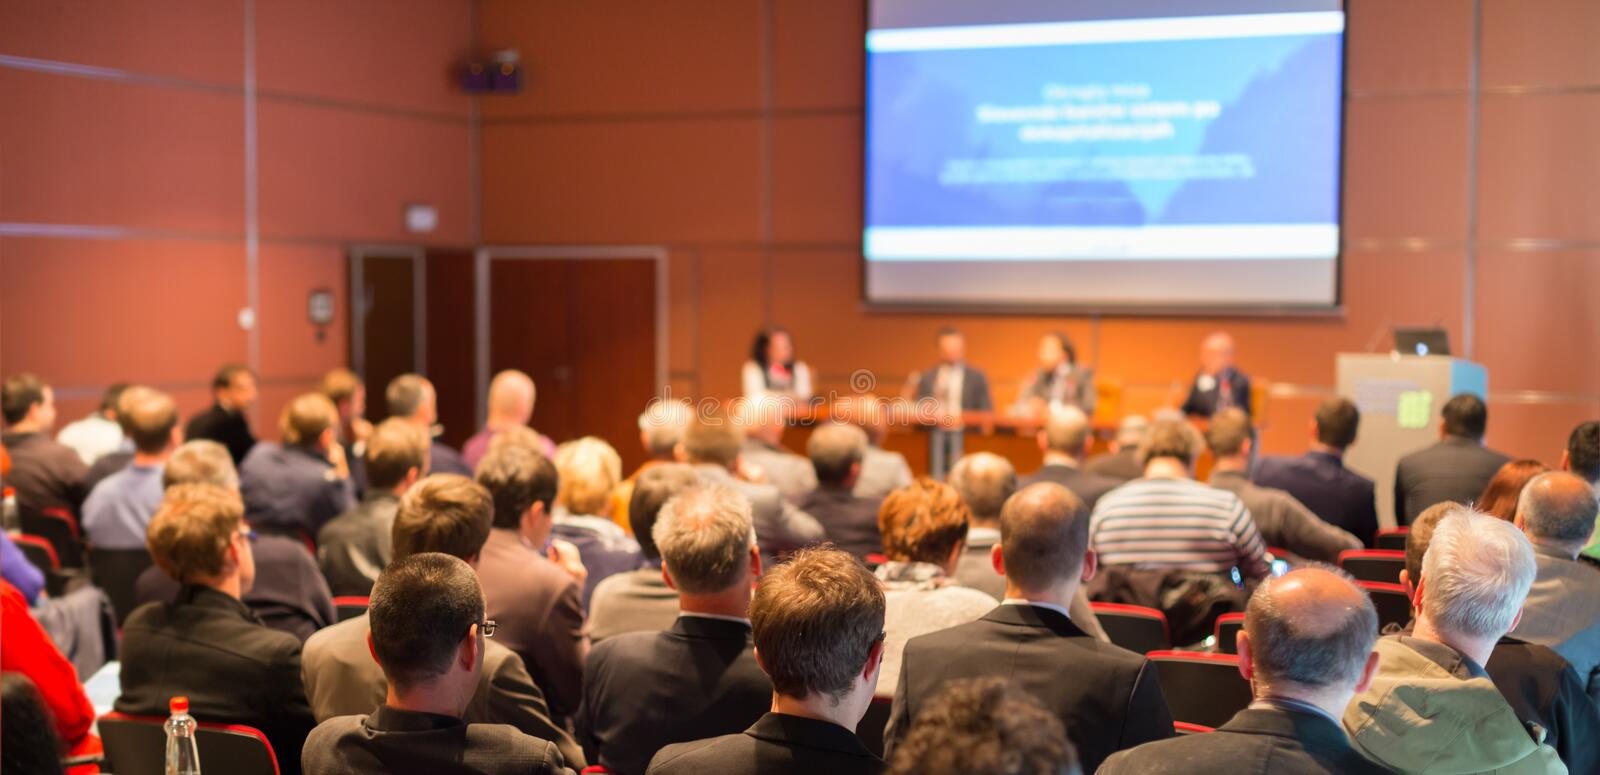 Audience at the conference hall. royalty free stock photography